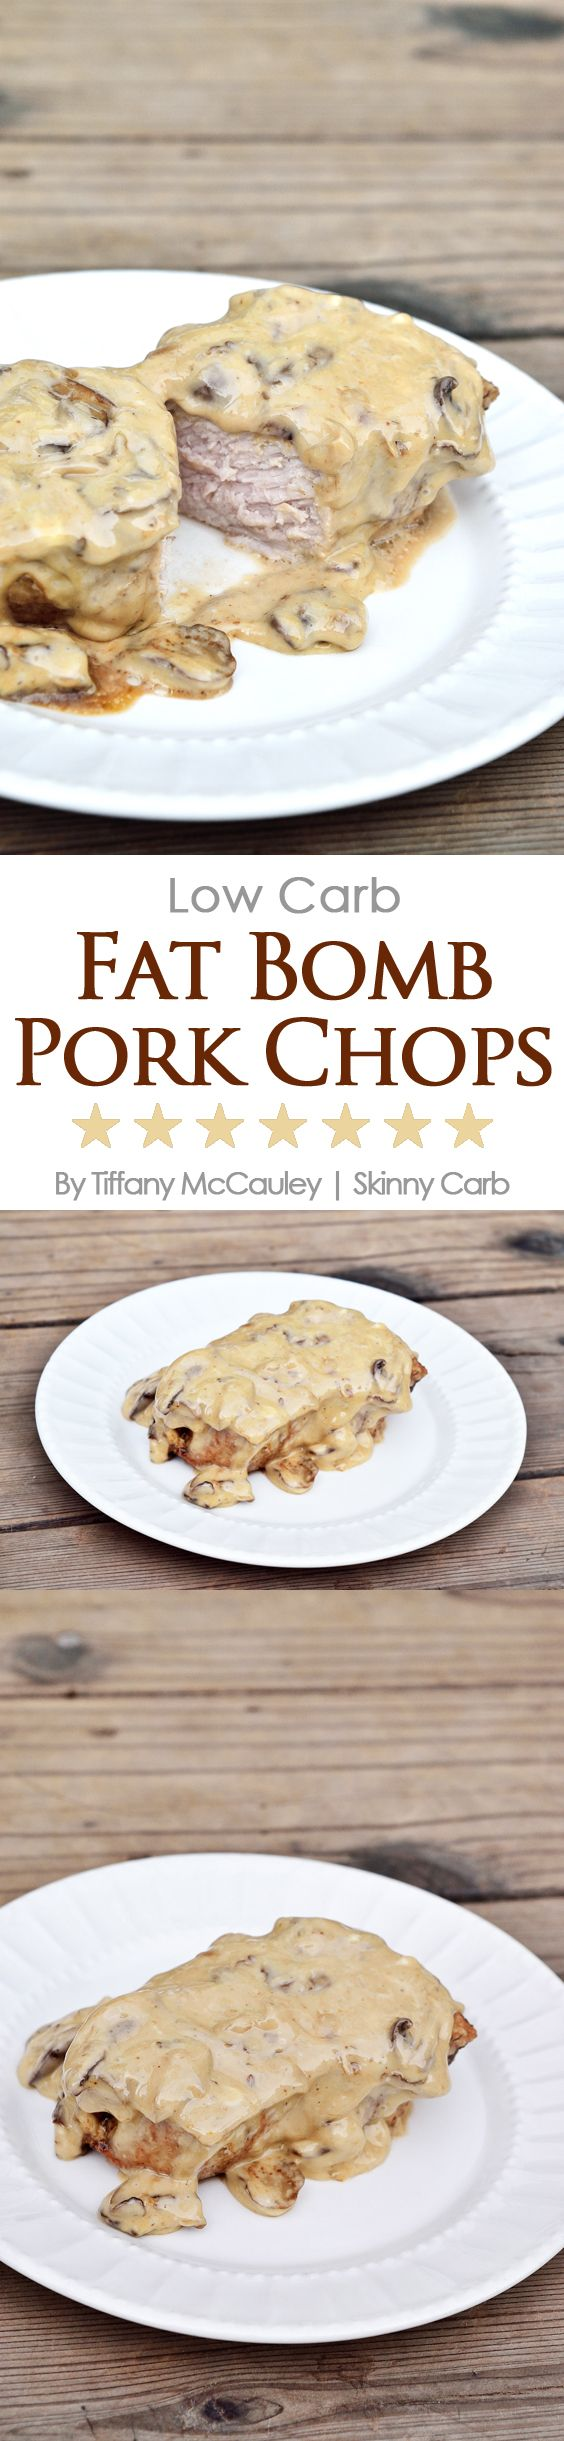 Low Carb Fat Bomb Pork Chops Recipe - Perfect for a Keto diet or just for generally getting plenty of fats in your low carb eating plan. ~ http://www.skinnycarb.com